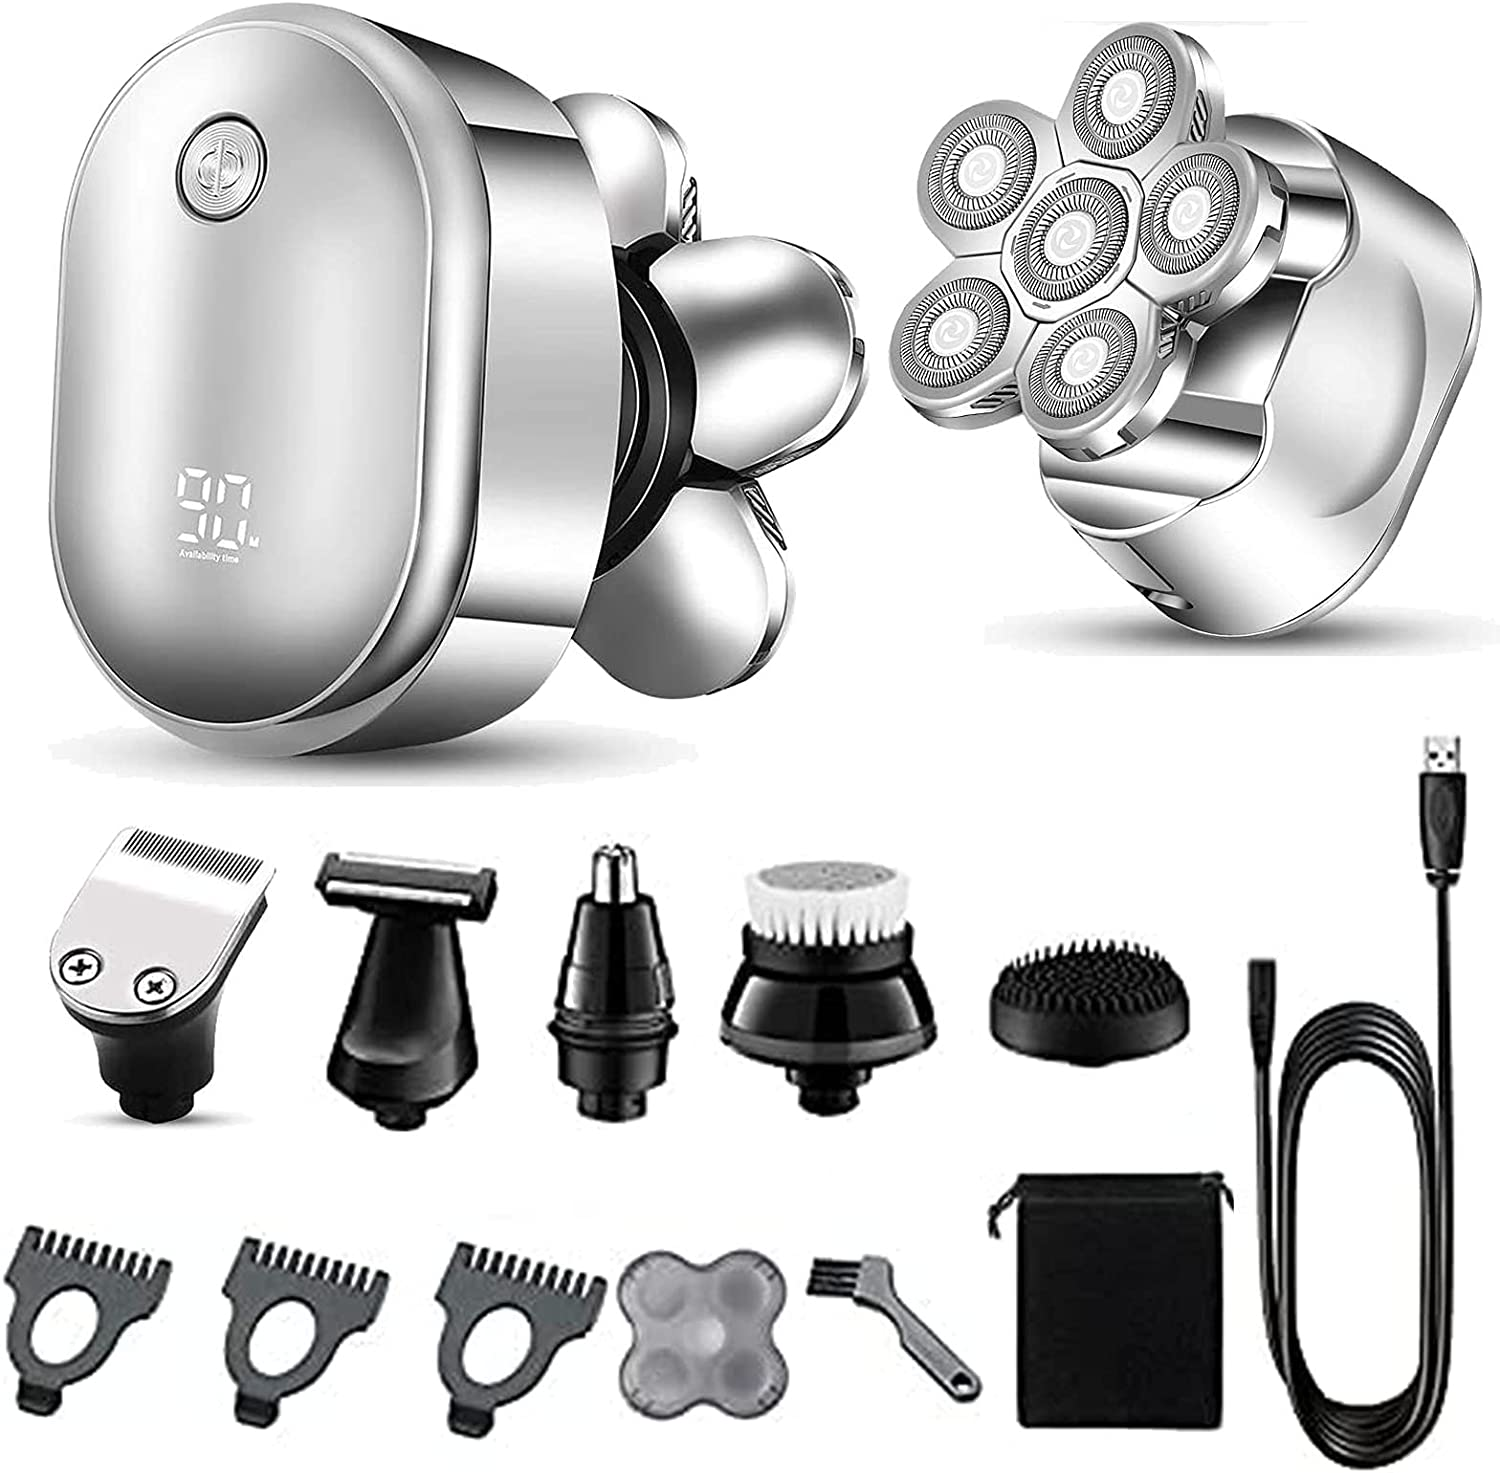 Over item handling Electric Shaver Razor For Men Trimmer Beard Hair Rotary We OFFer at cheap prices Body